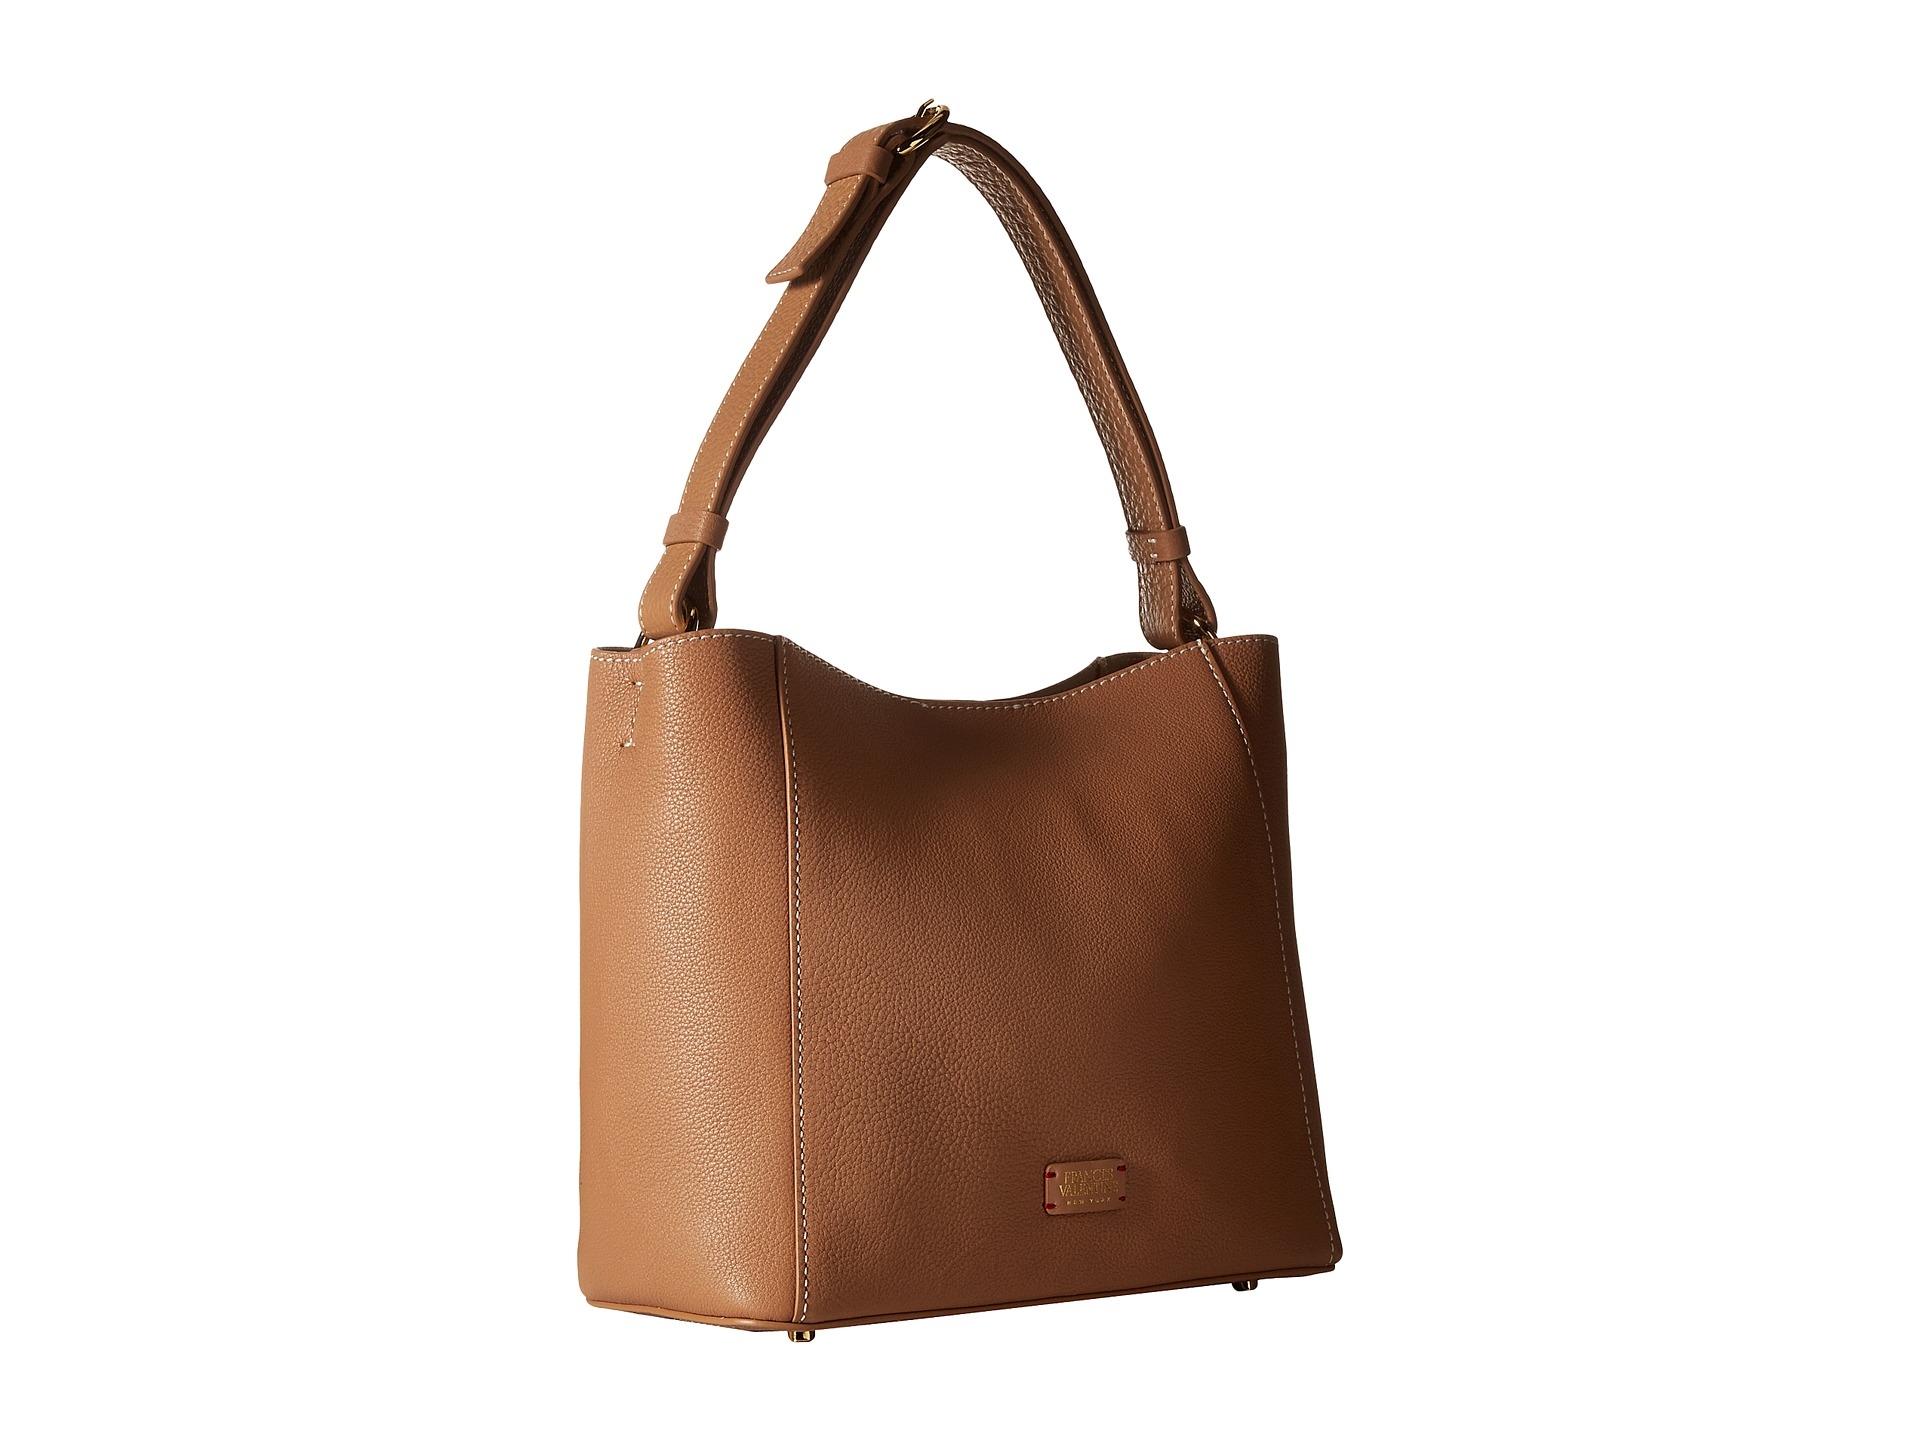 Frances Valentine New Small June Hobo At